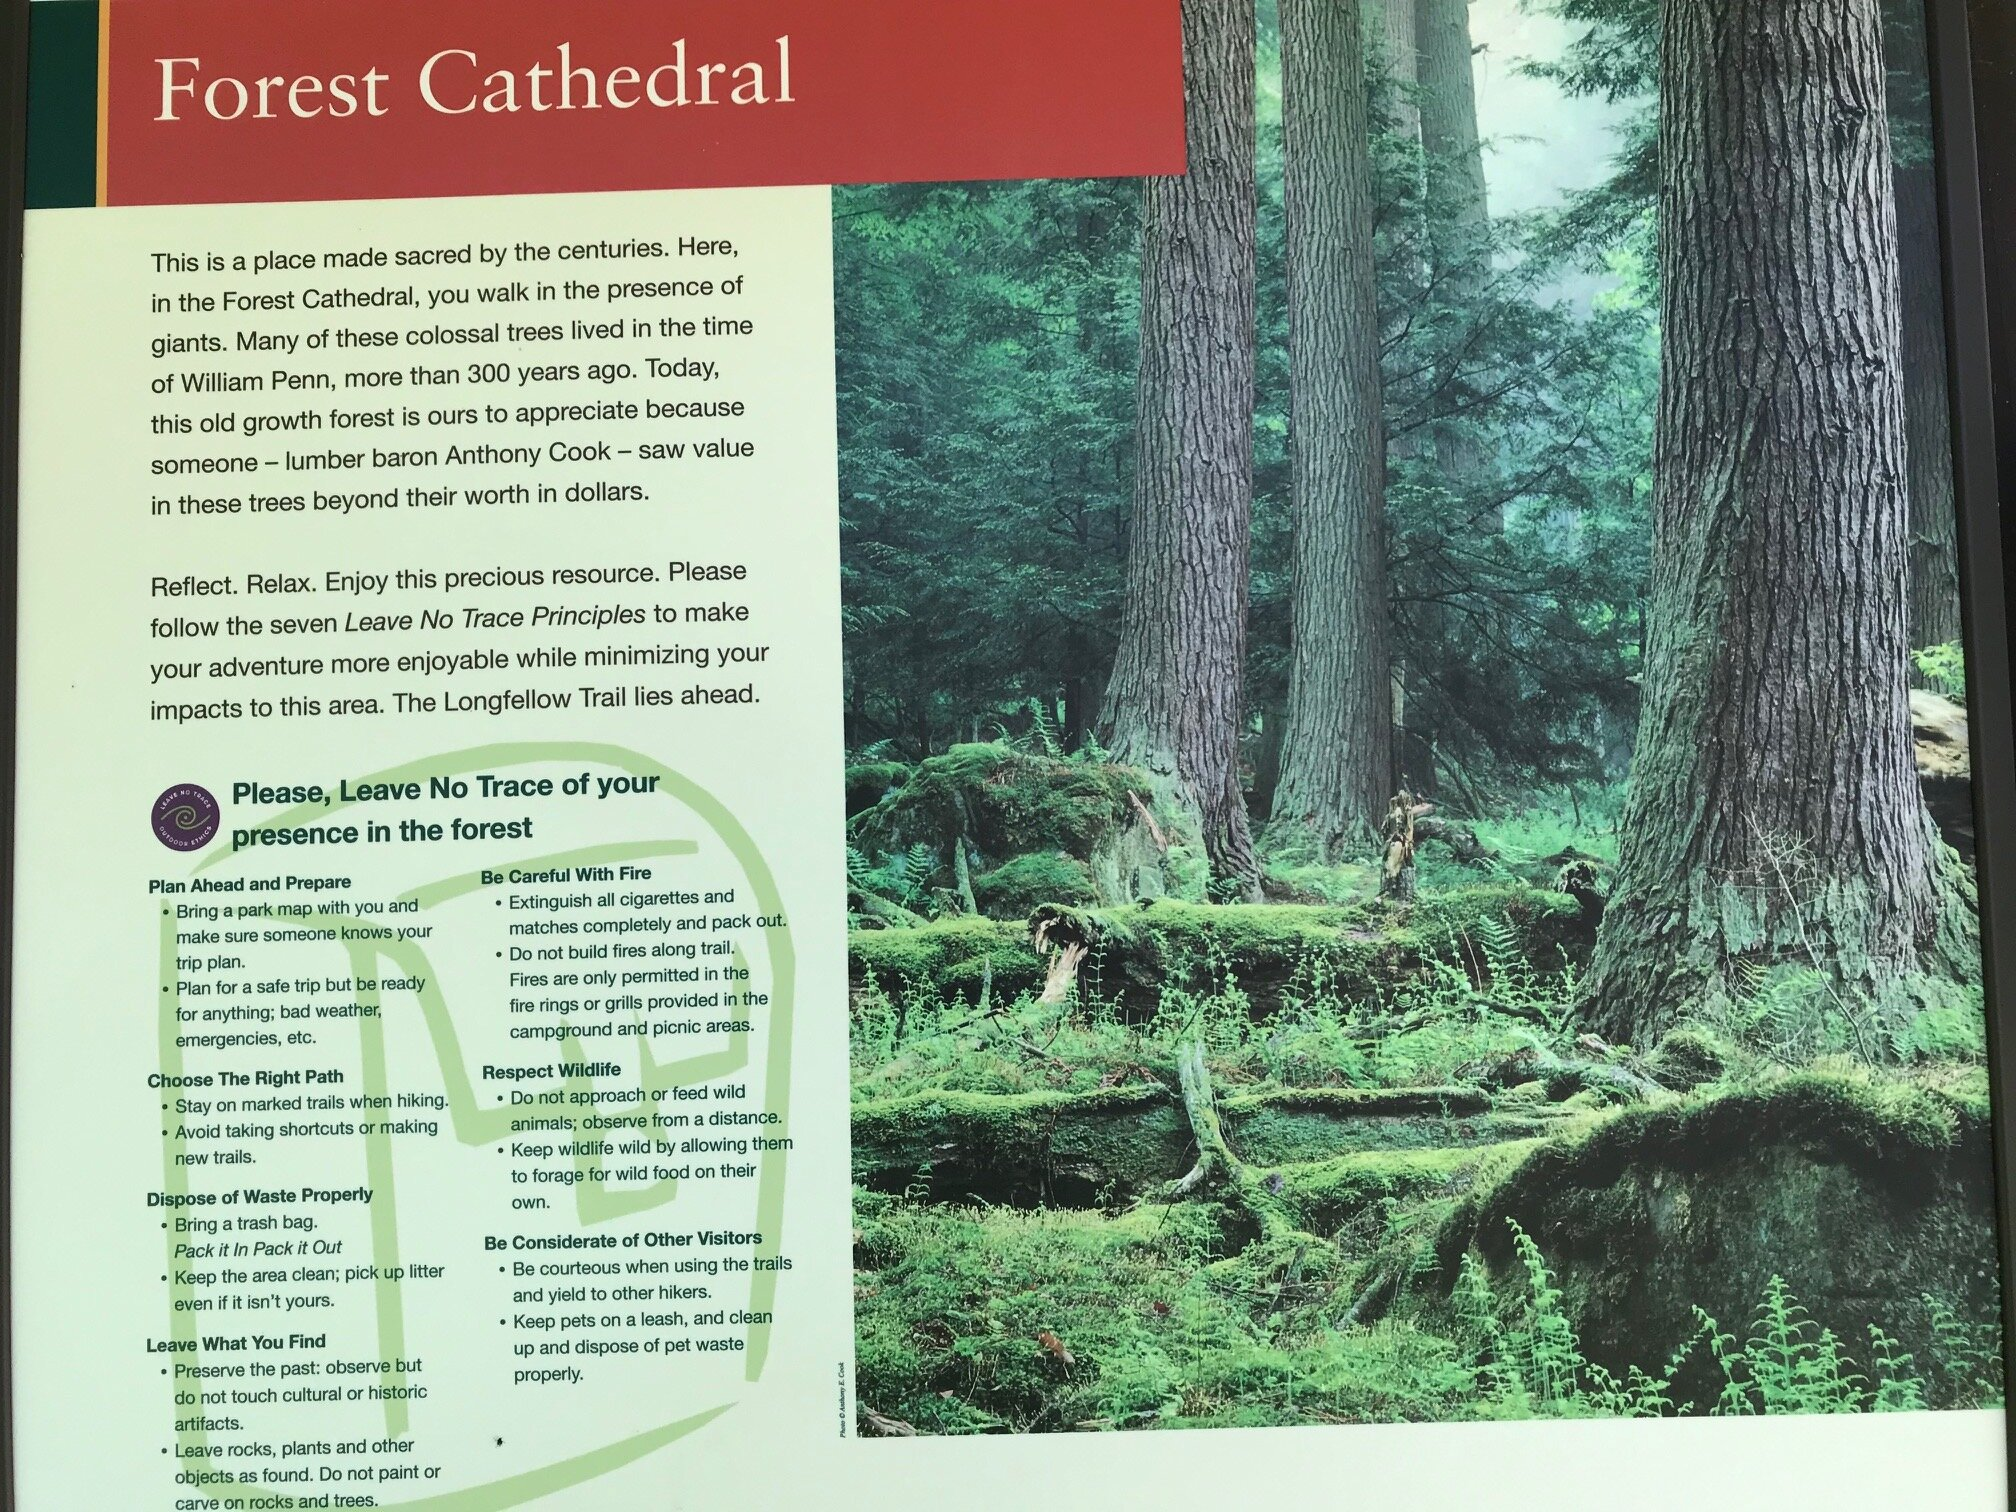 Facts about the forest.